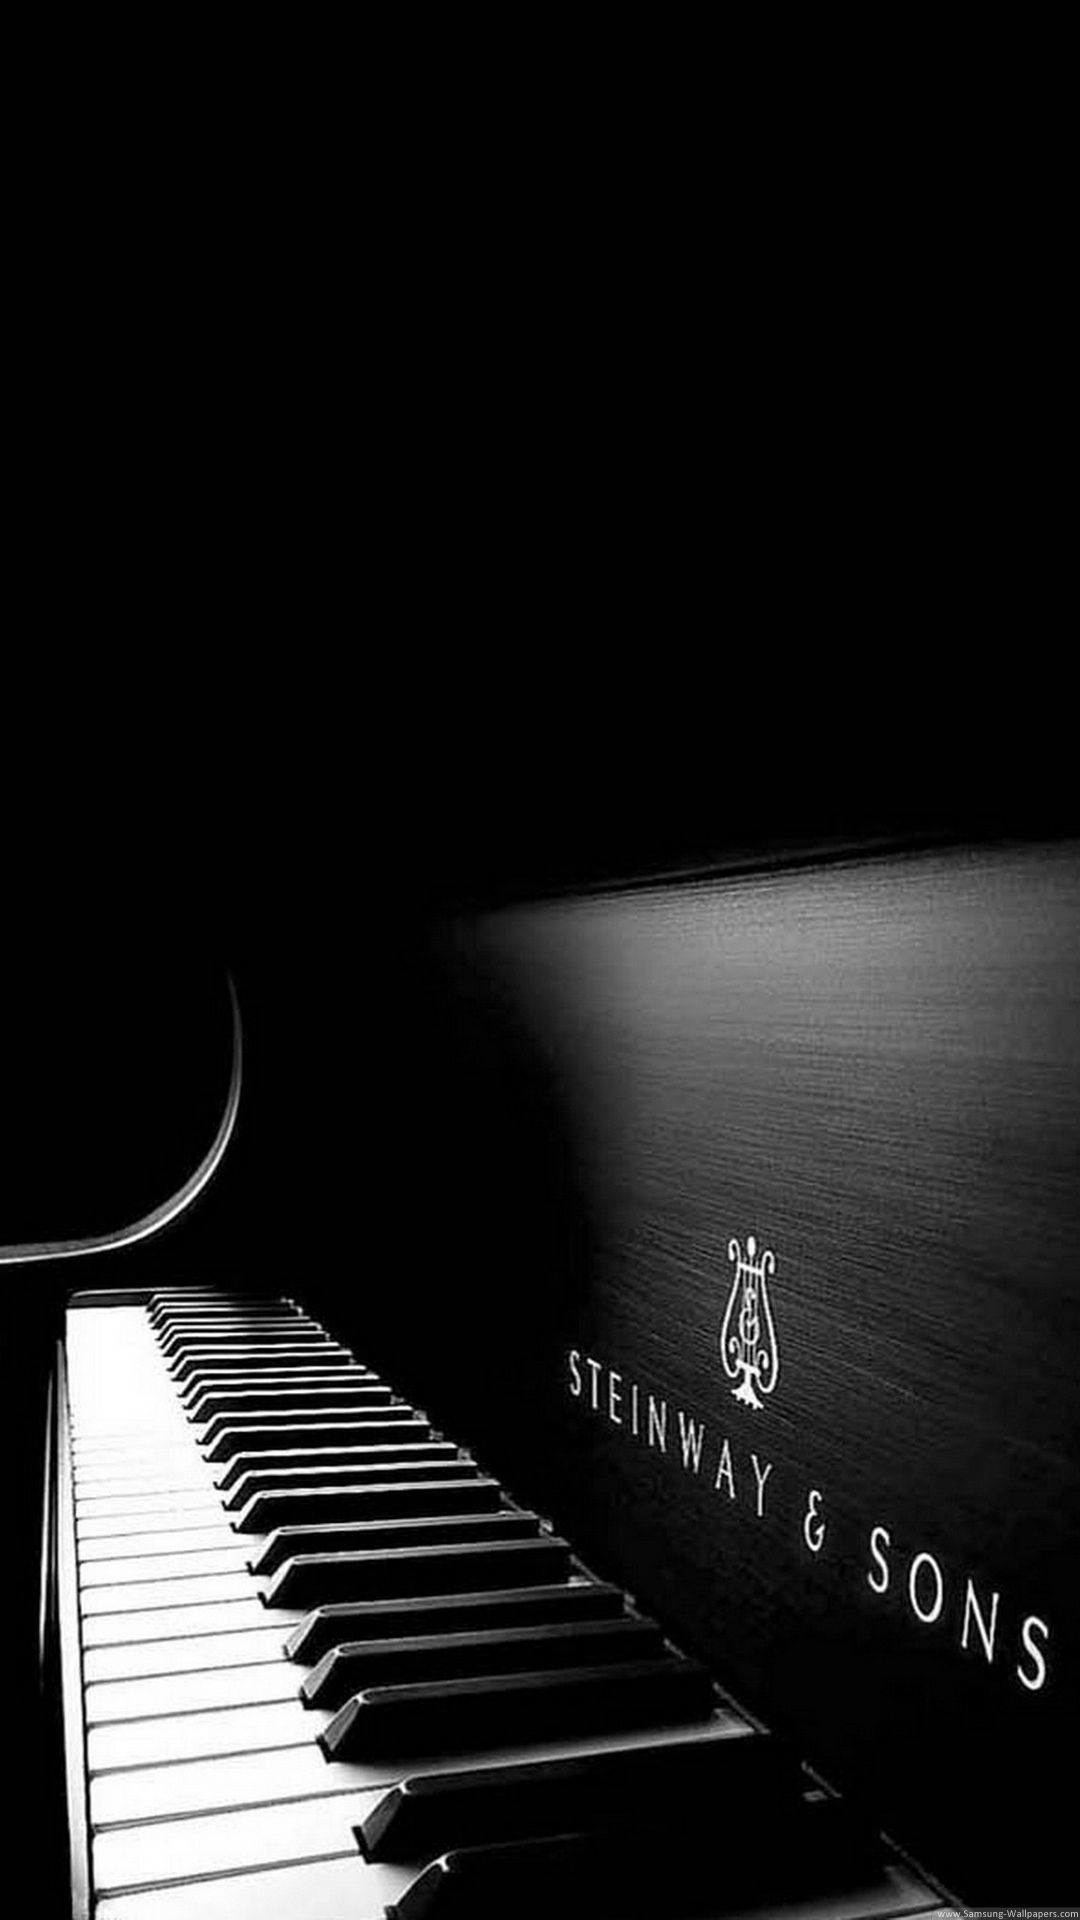 70 Music Iphone Wallpapers For Music Manias Piano